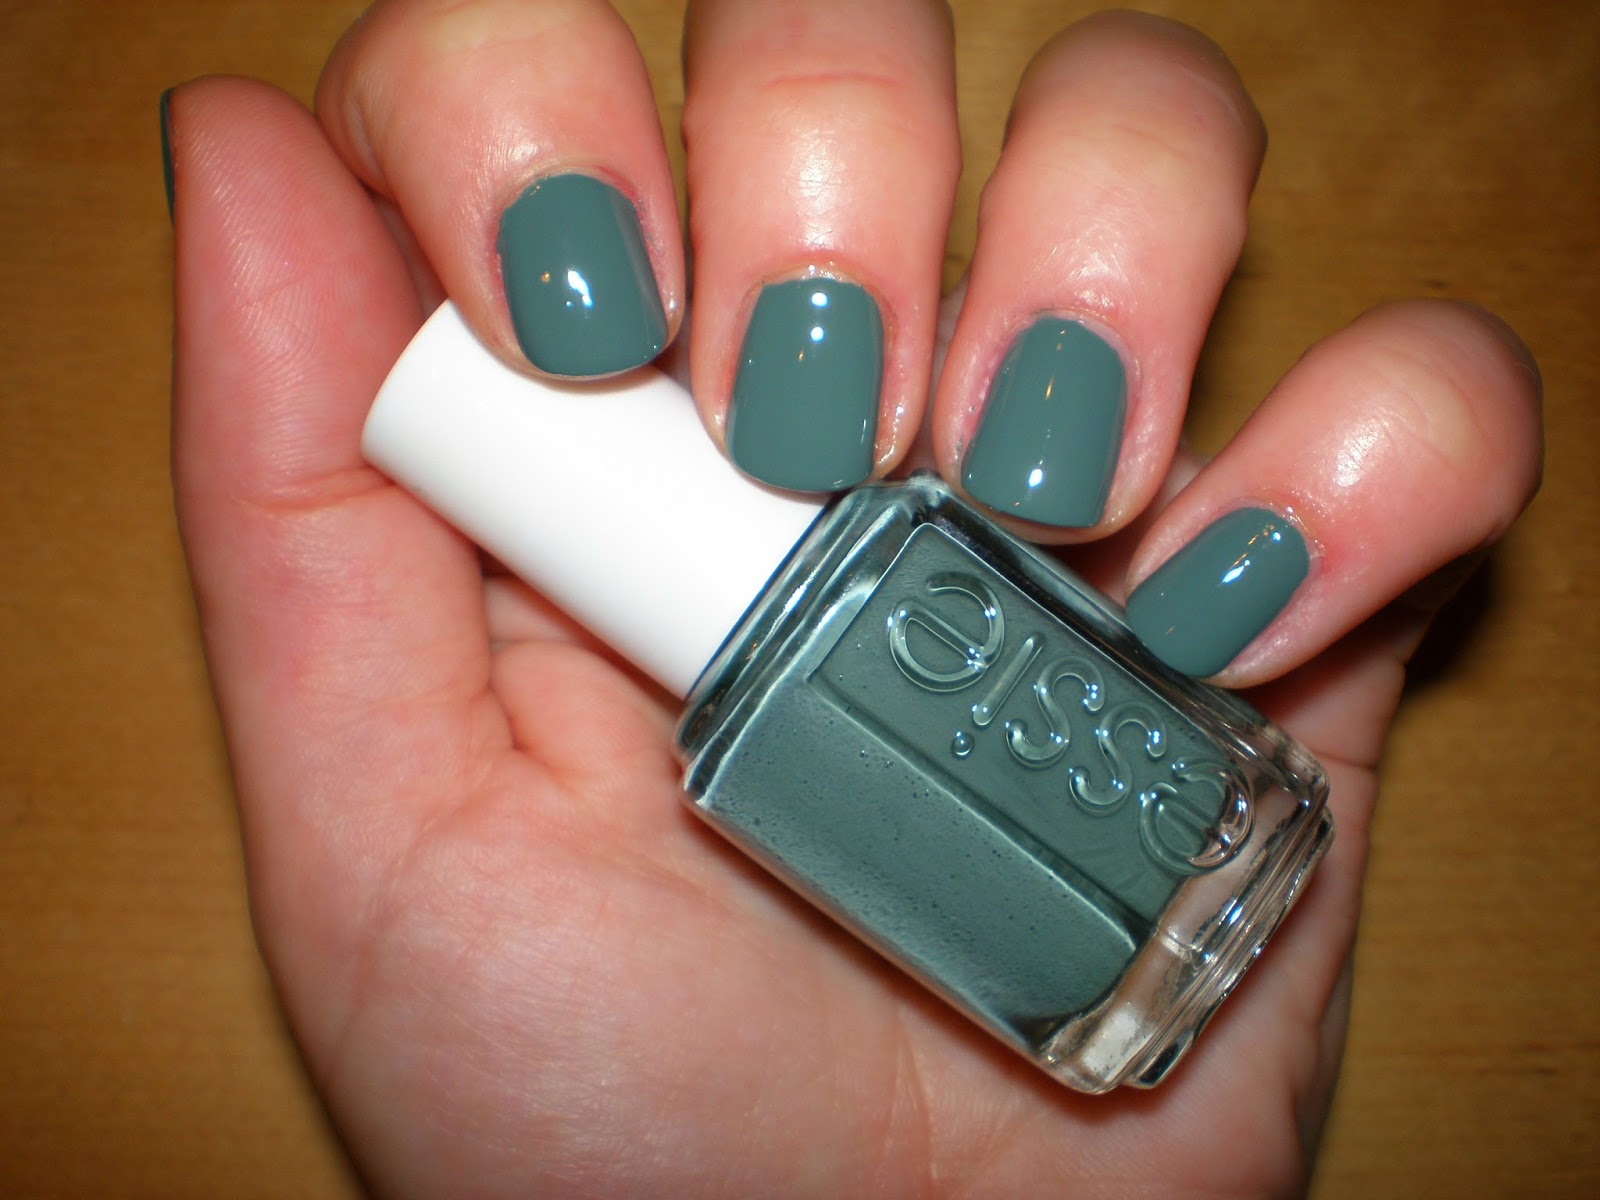 Essie nail polish in Fall in Line